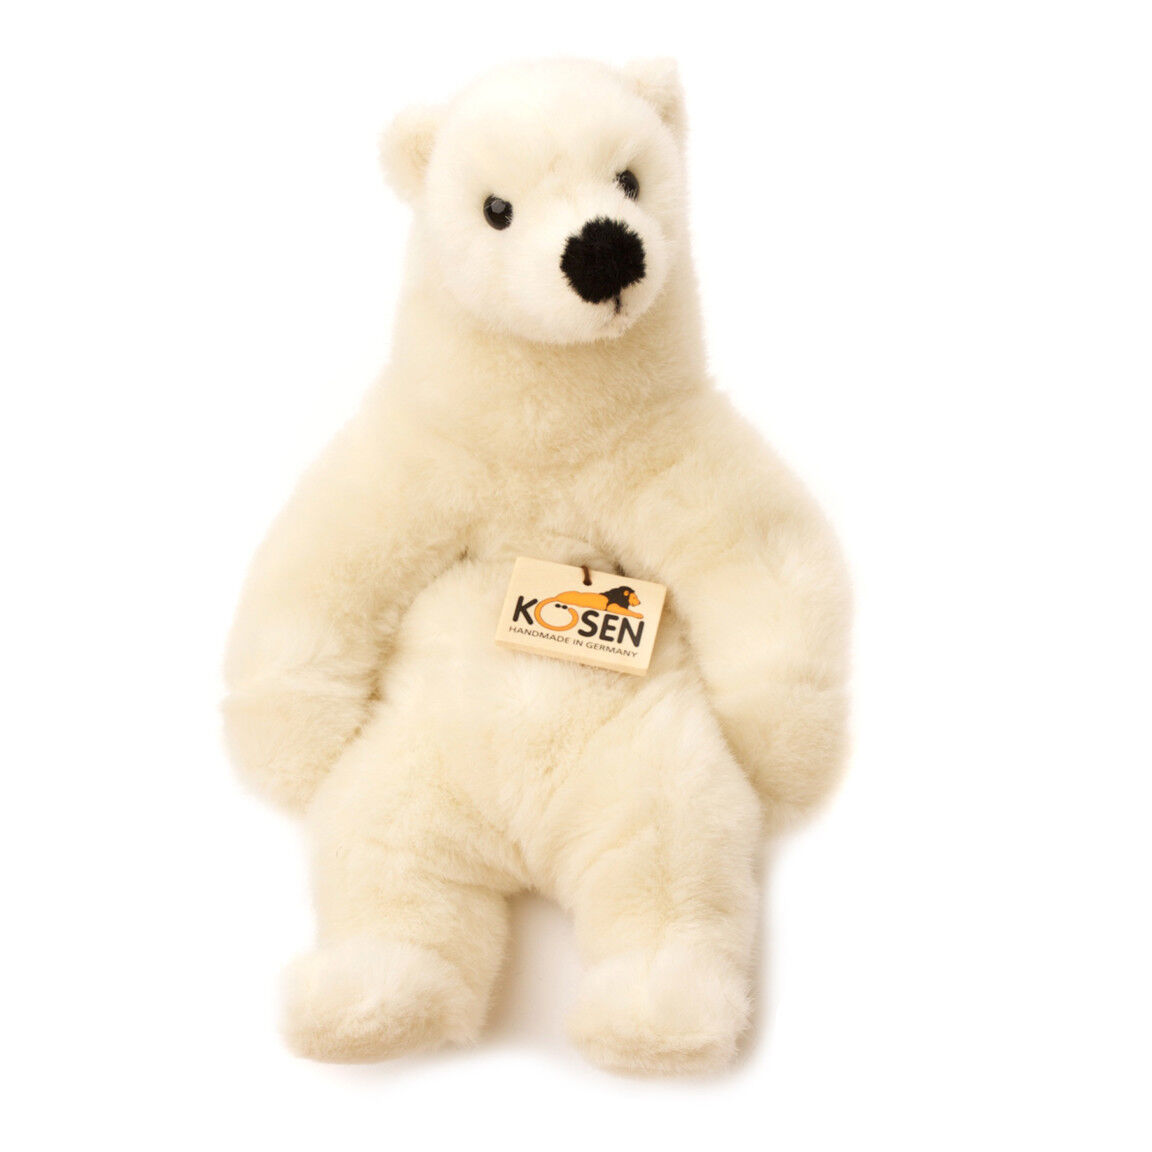 Polar Bear 'Linn' collectable plush soft toy - Kosen   Kösen - 4750